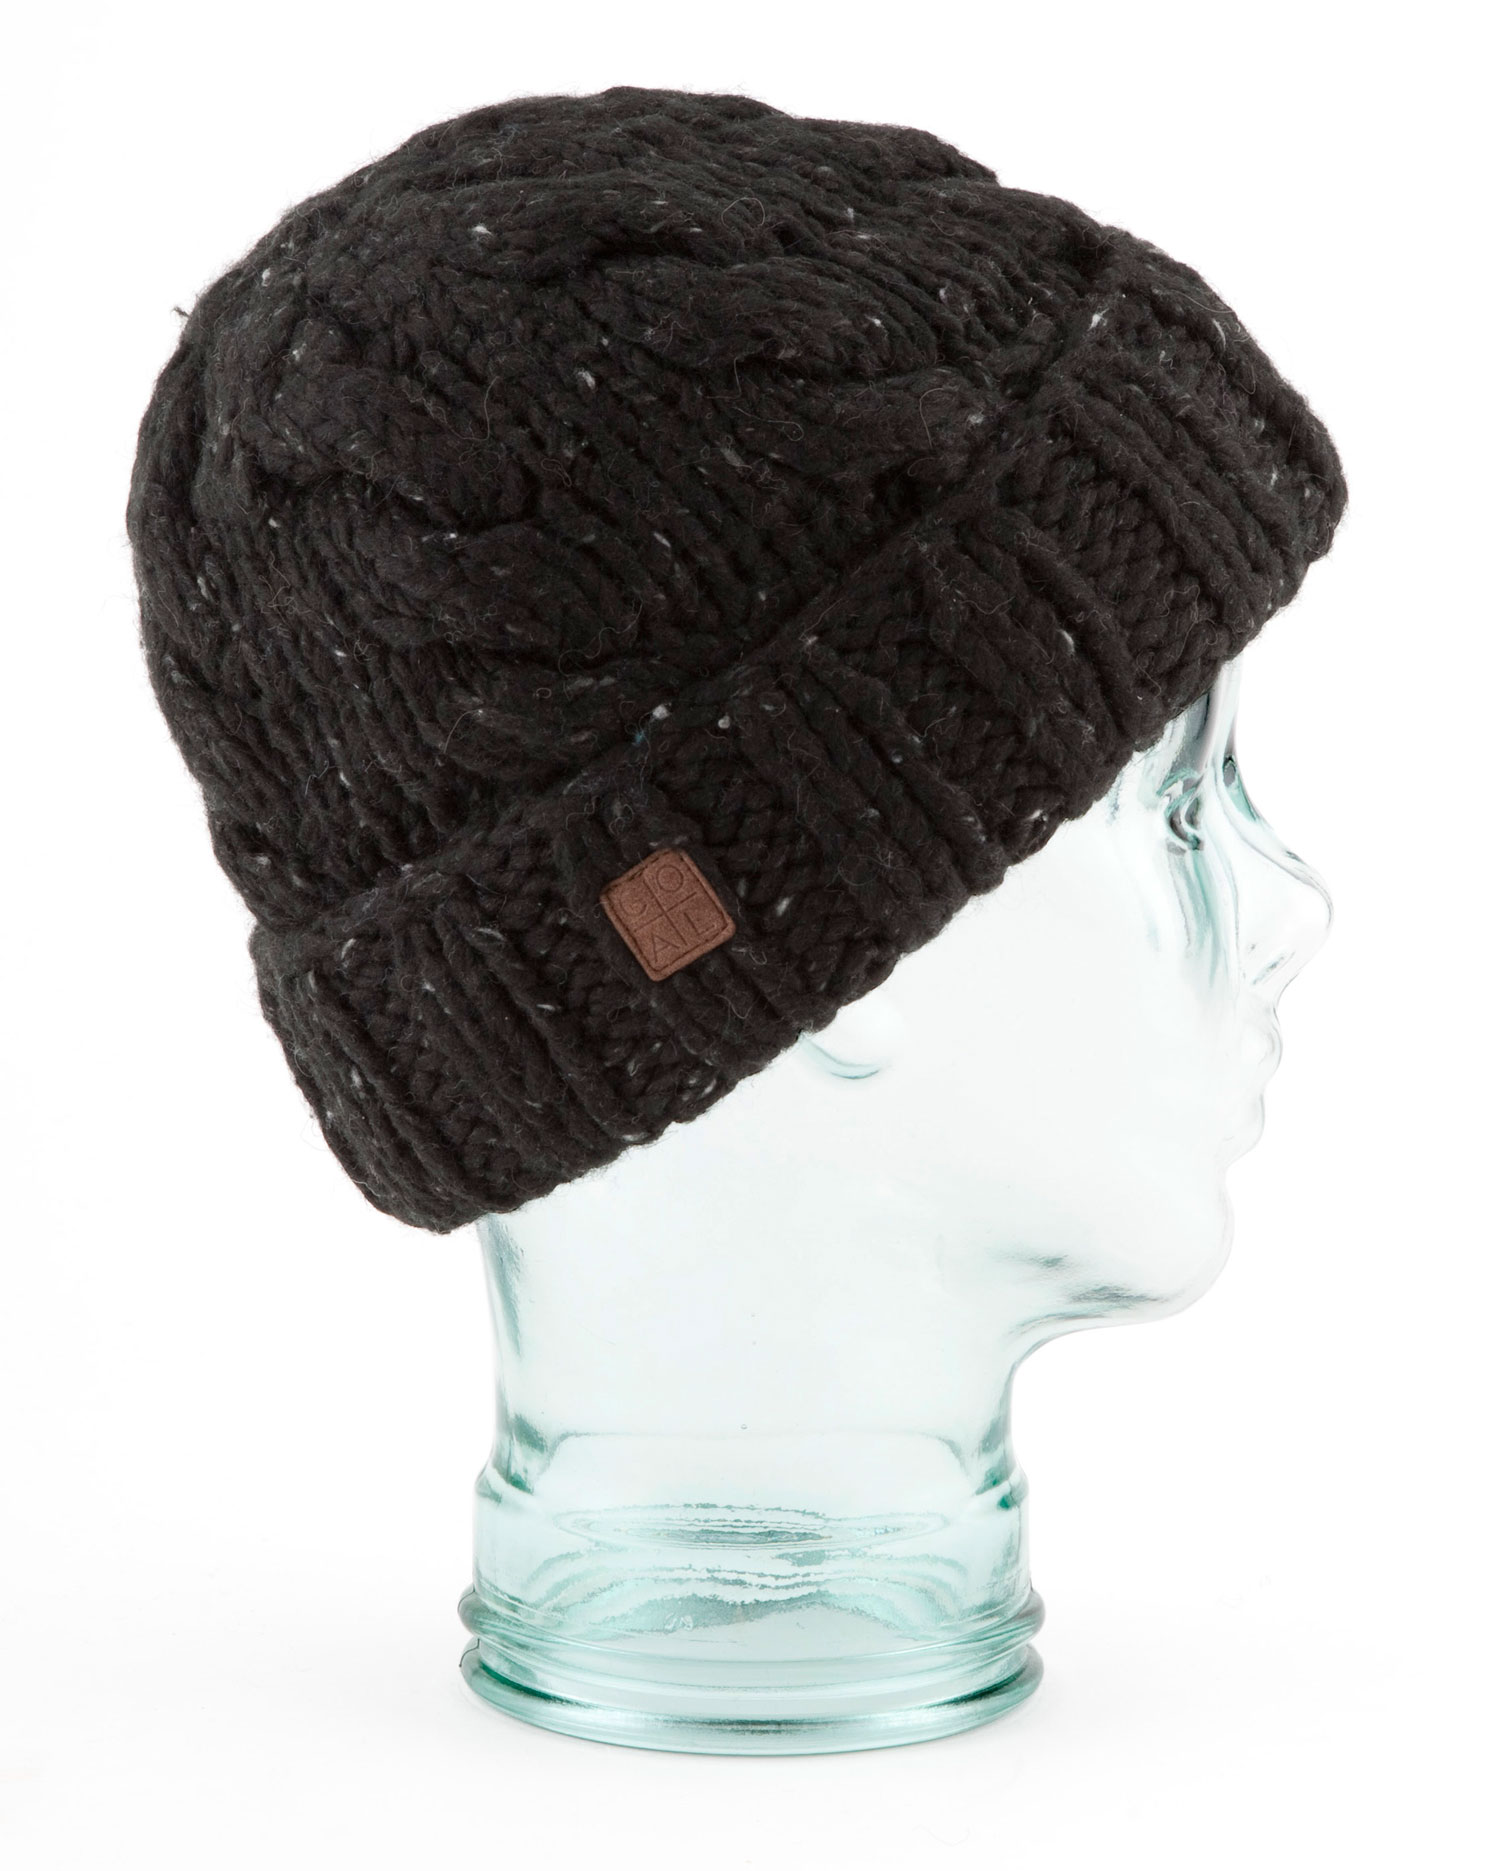 New for Fall 12 is a traditional chunky hand-knit Nordic beanie with a cabled body and thick rib cuff. Old school flecks of color accent the yarn, trimmed with a suede label. Wool blend. - $23.95